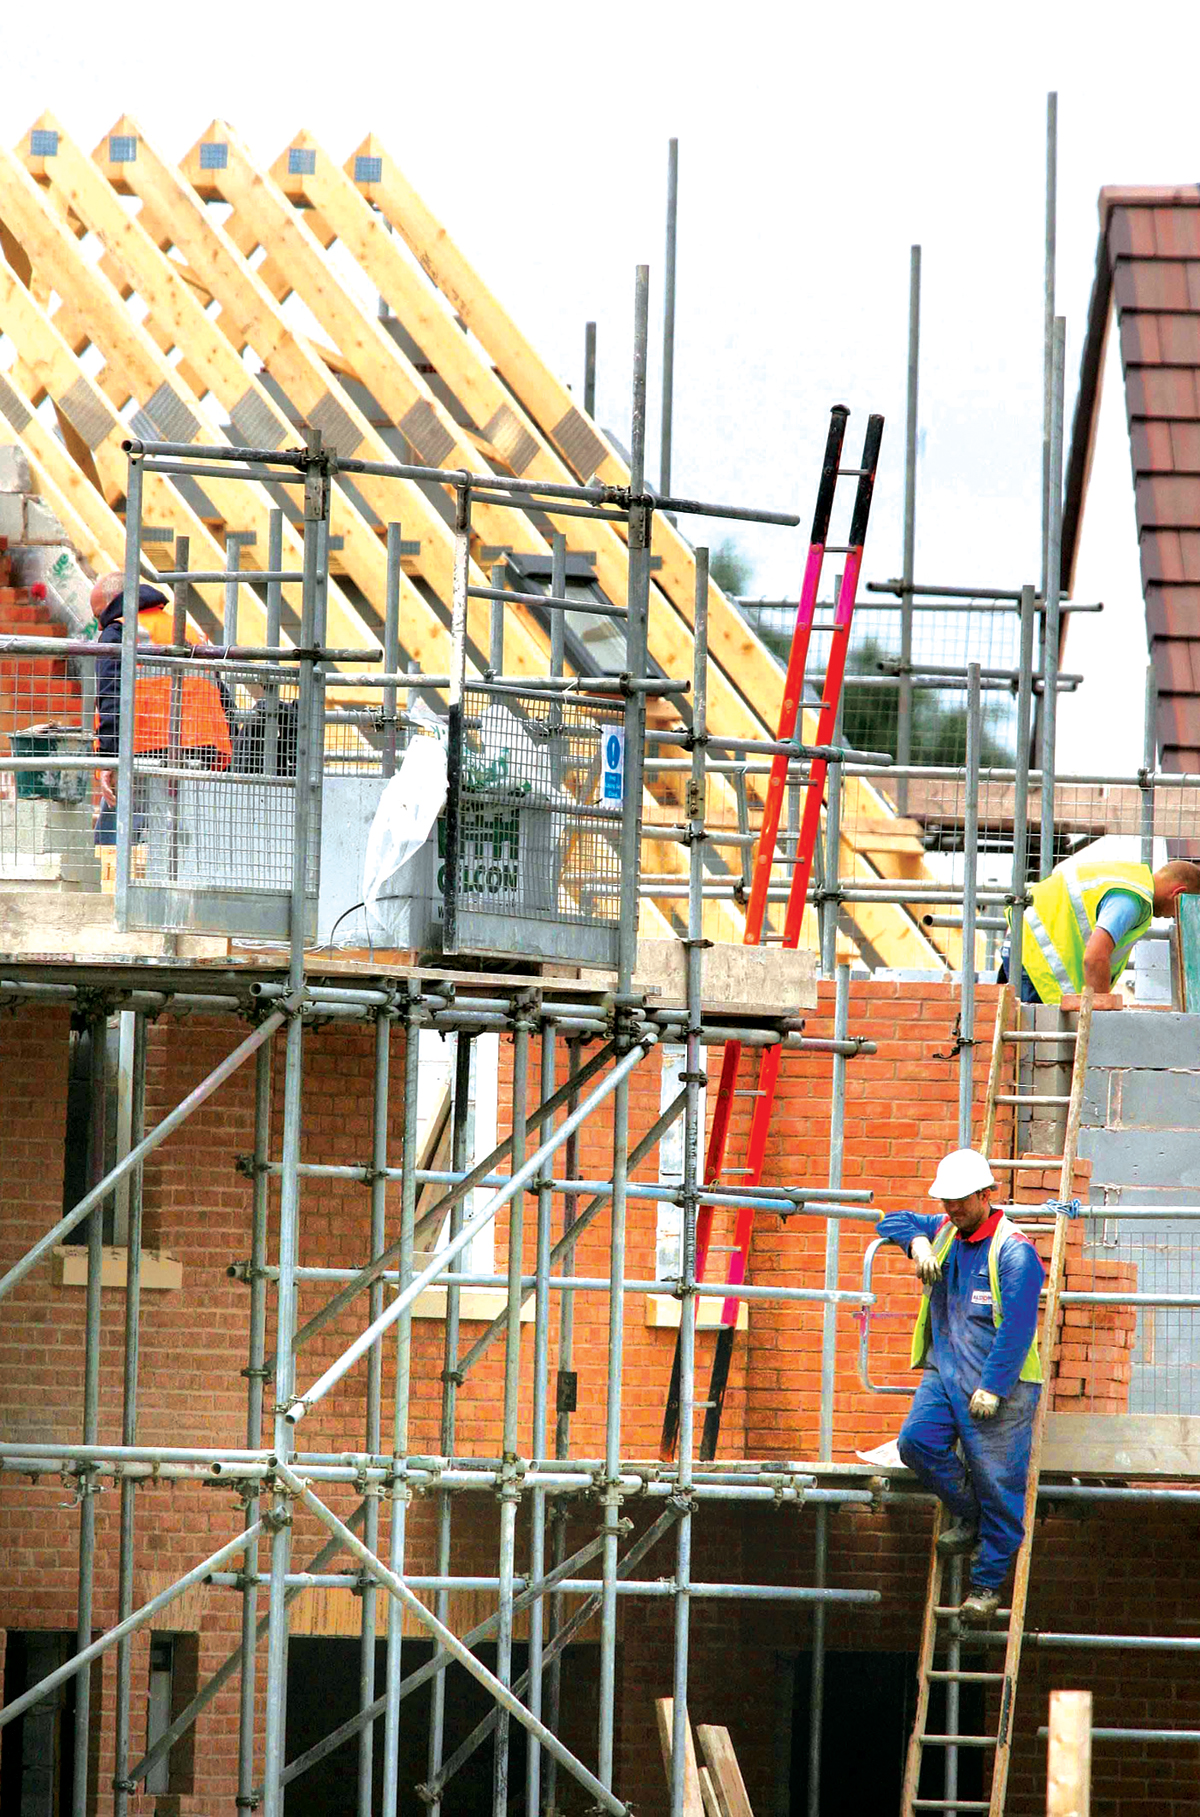 HOUSE PLANS: Builders at work on a housing development. Library image.